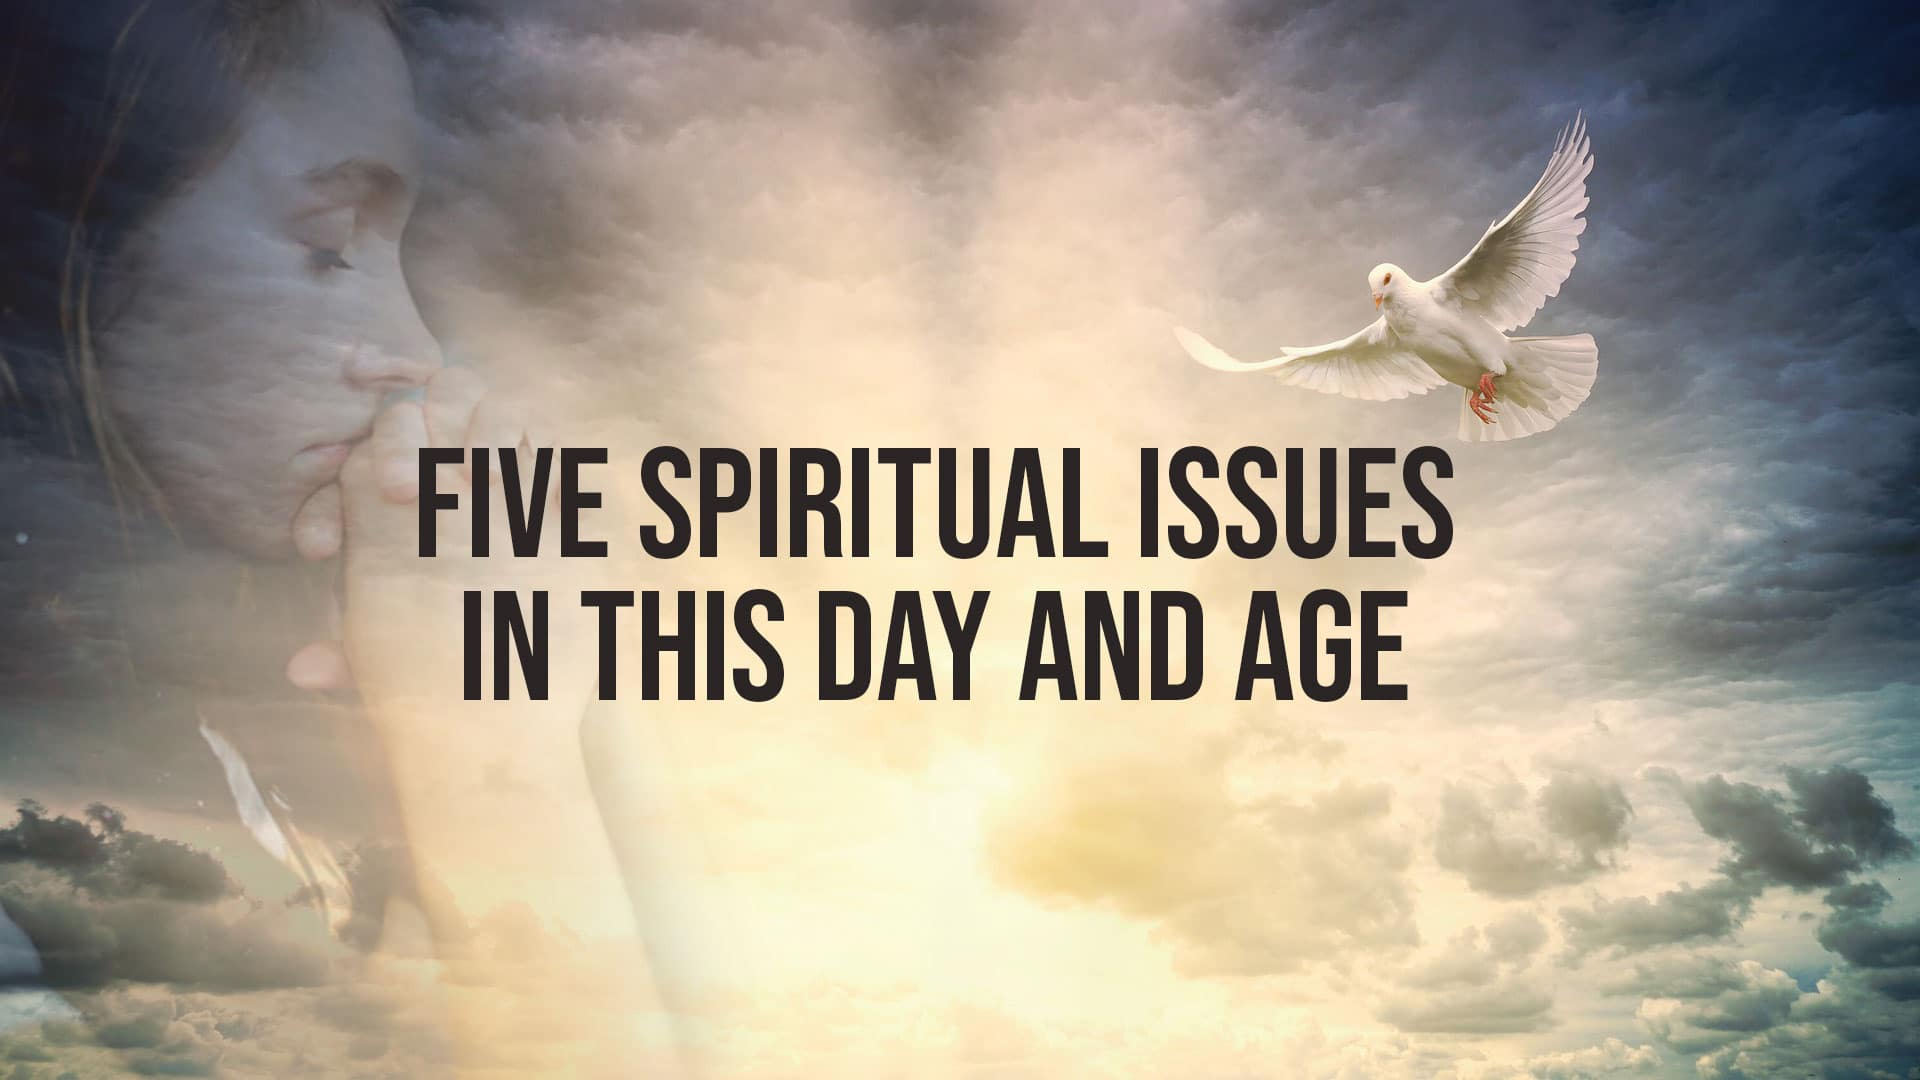 Five-Spiritual-Issues-in-this-Day-and-Age banner